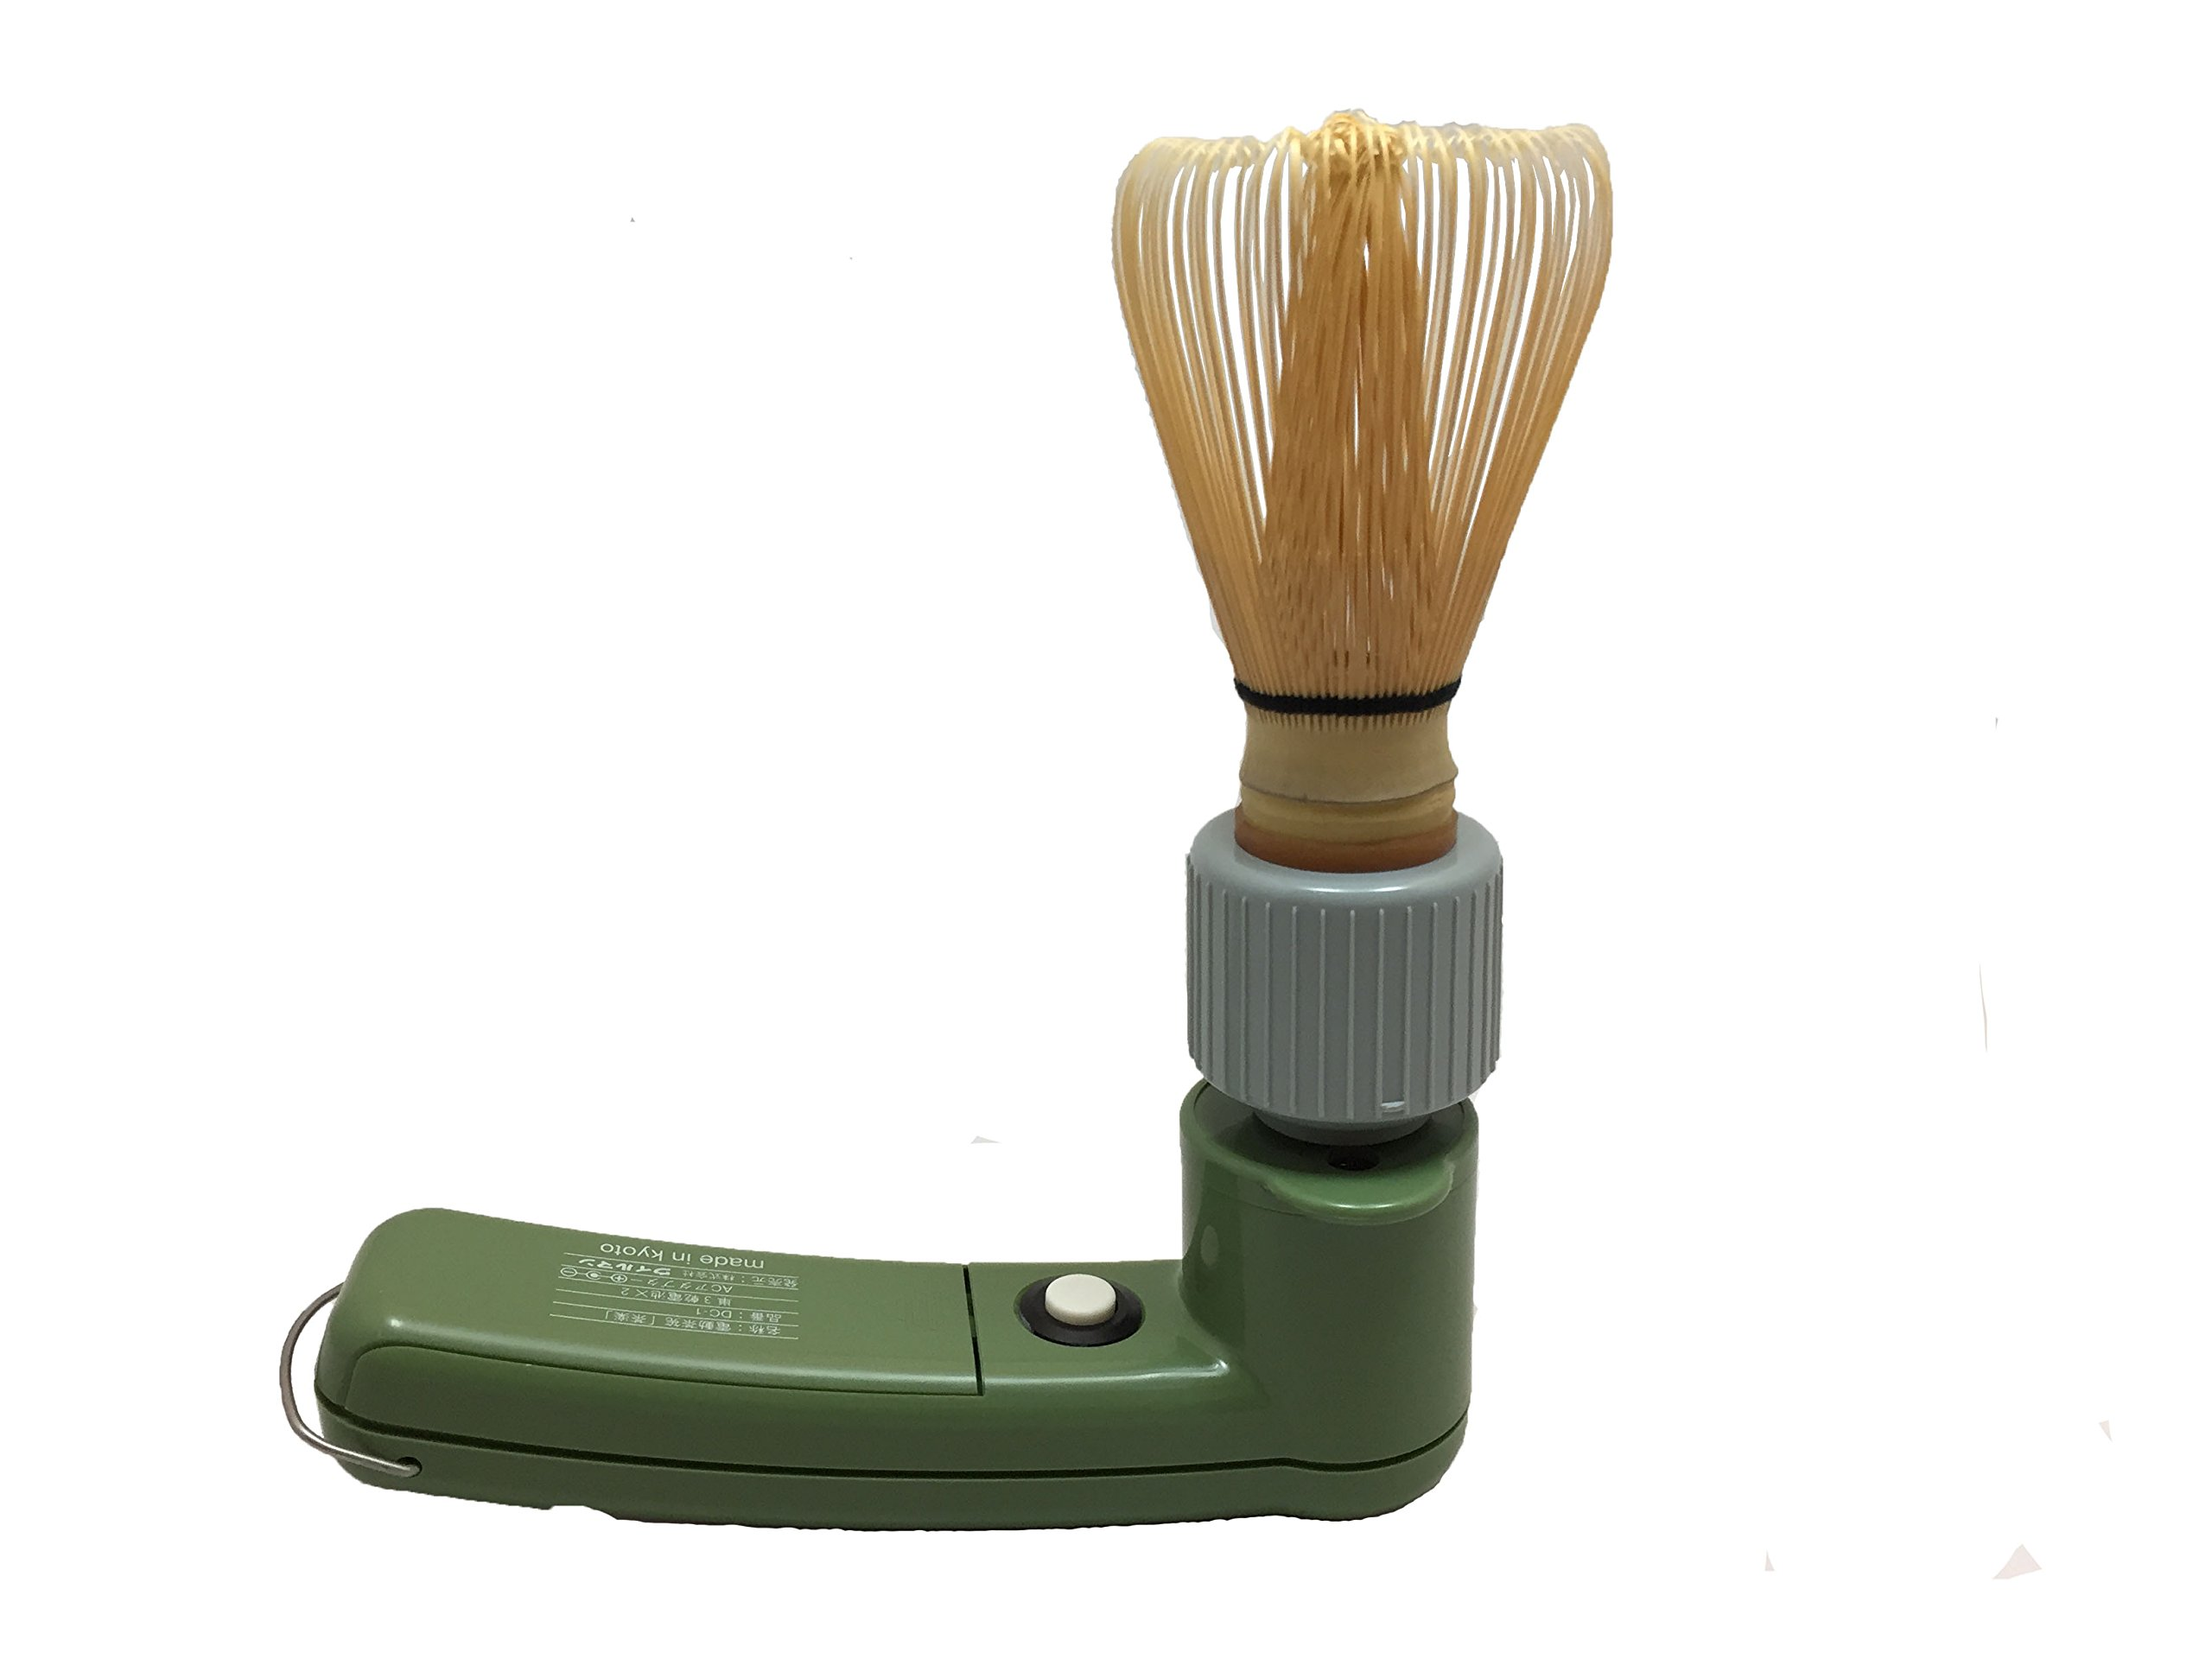 Charaku, Japanese Handheld Electric Matcha Whisk/ Frother with bamboo chasen (commercial use) by Willman (Image #1)